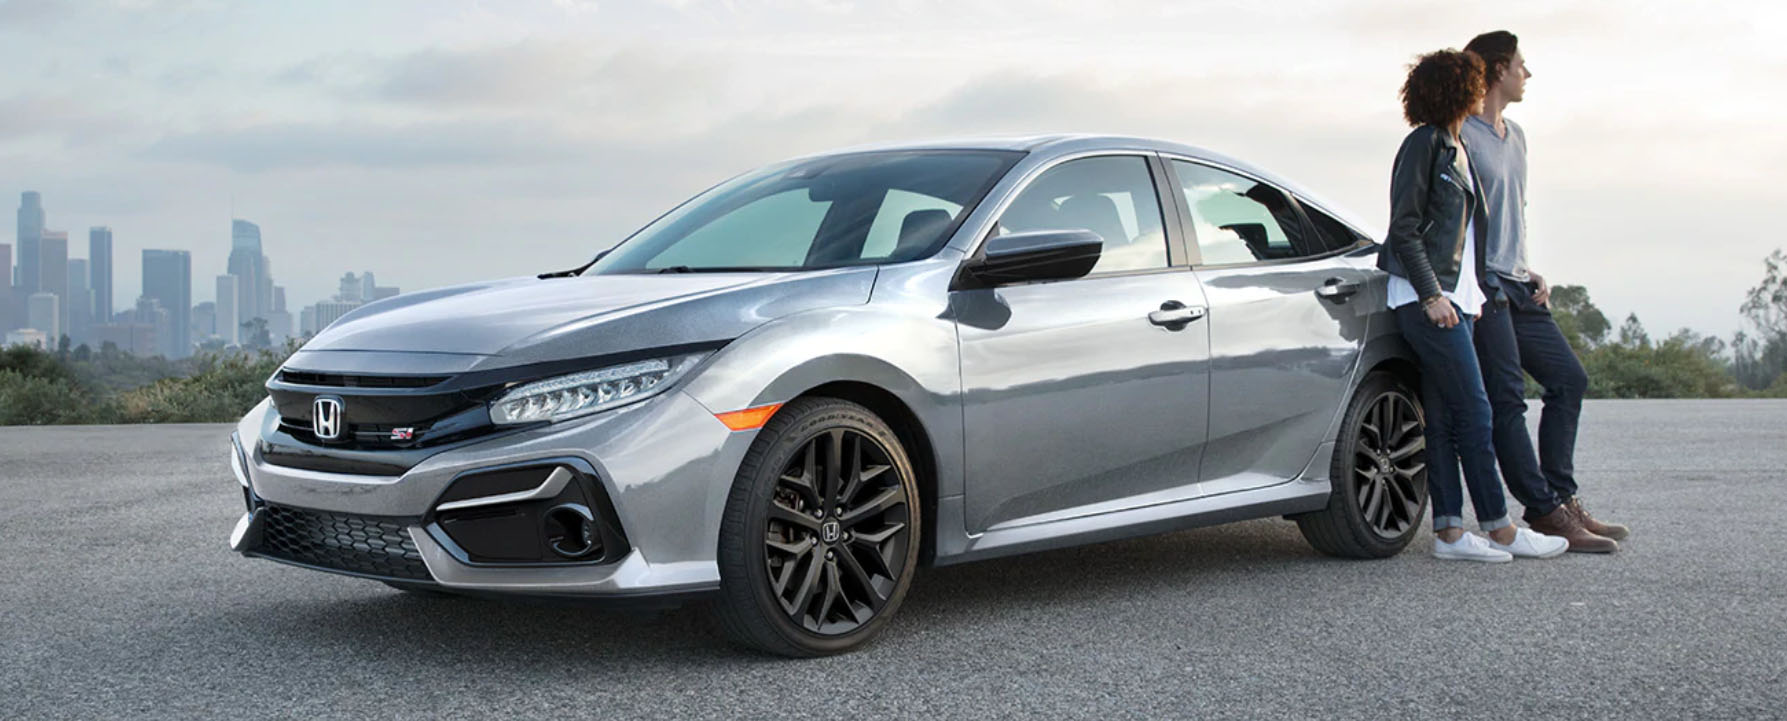 2020 Honda Civic Si Sedan For Sale in Huntington